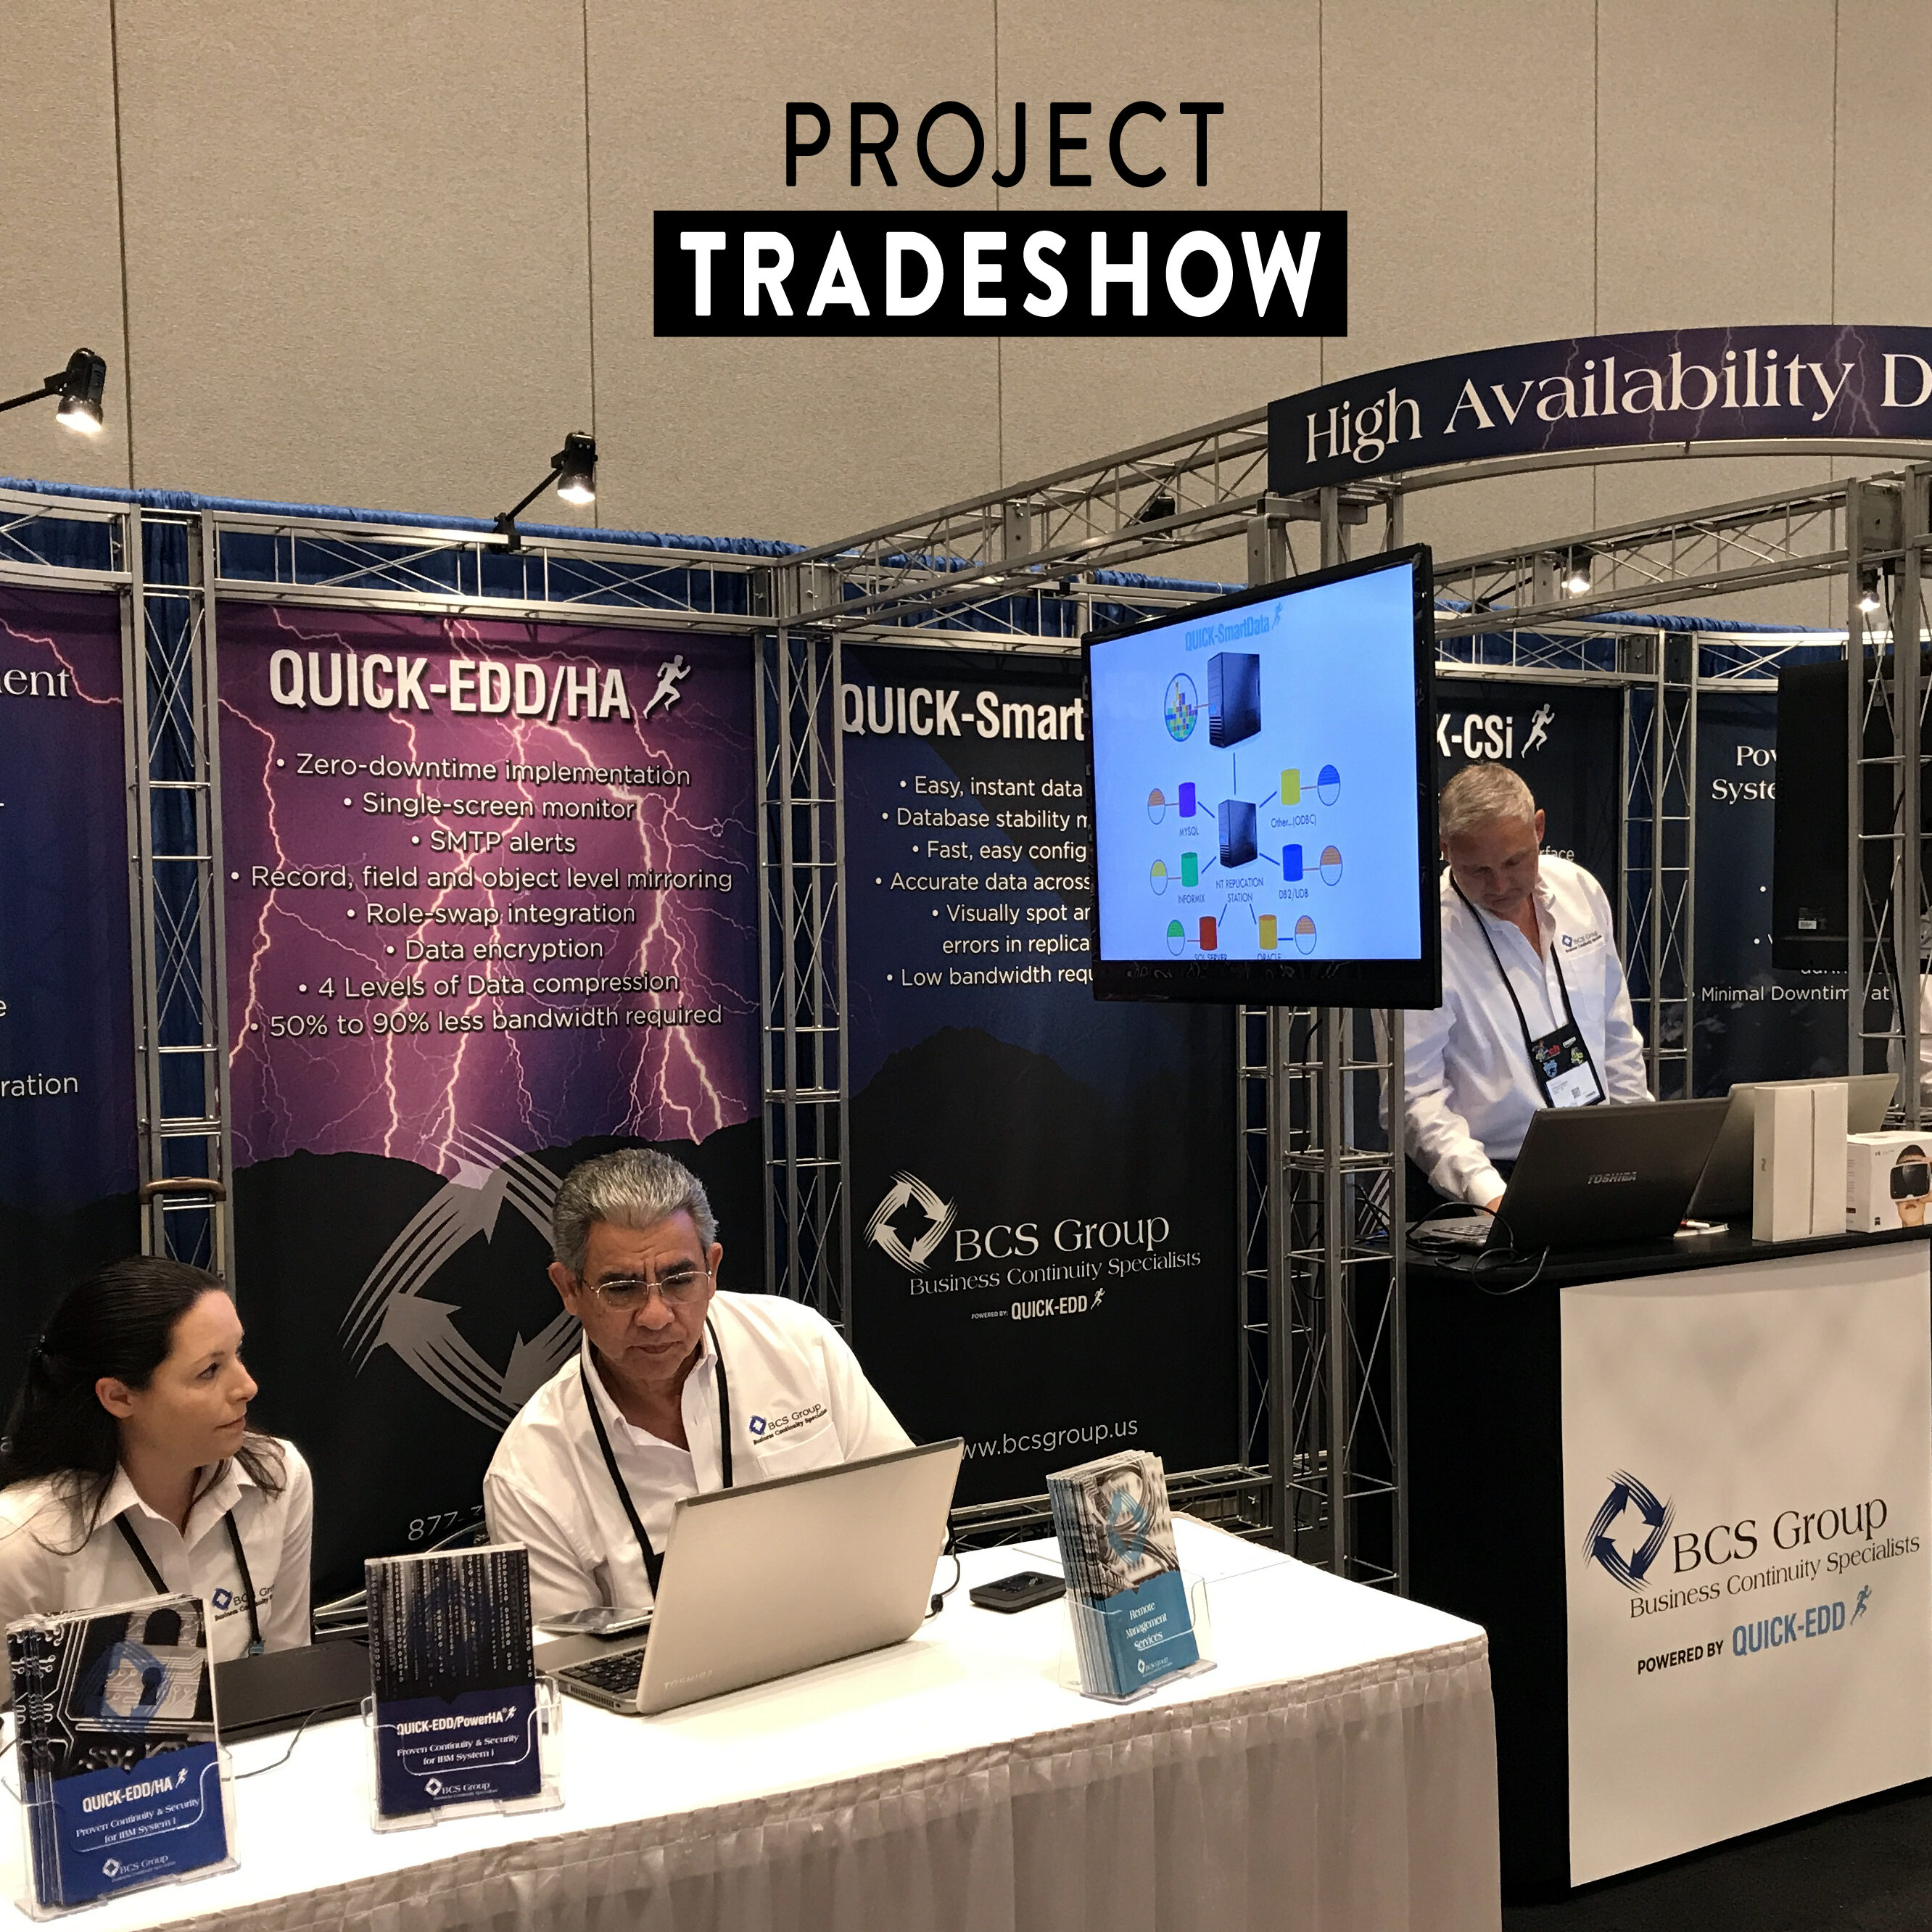 There are many occasions when Renting your display just makes sense.  In which case we'll ship out your complete Rental booth to you, Graphics and all; you just set it up at the show and return it to us after the show, minus the graphics, unless you want us to store it all until next show.  Now, our Boutique Turnkey Rental Solutions (TRS) offer 'Installation & Dismantling Service' at all the major trade show venues across the country for 10x10ft and bigger booths! We'll take care of all the Shipping and Installation & Dismantling service (I&D) at your venue.  You'll be able to walk into your specially designed space and get to work,    Just place your order 30 days before show date!